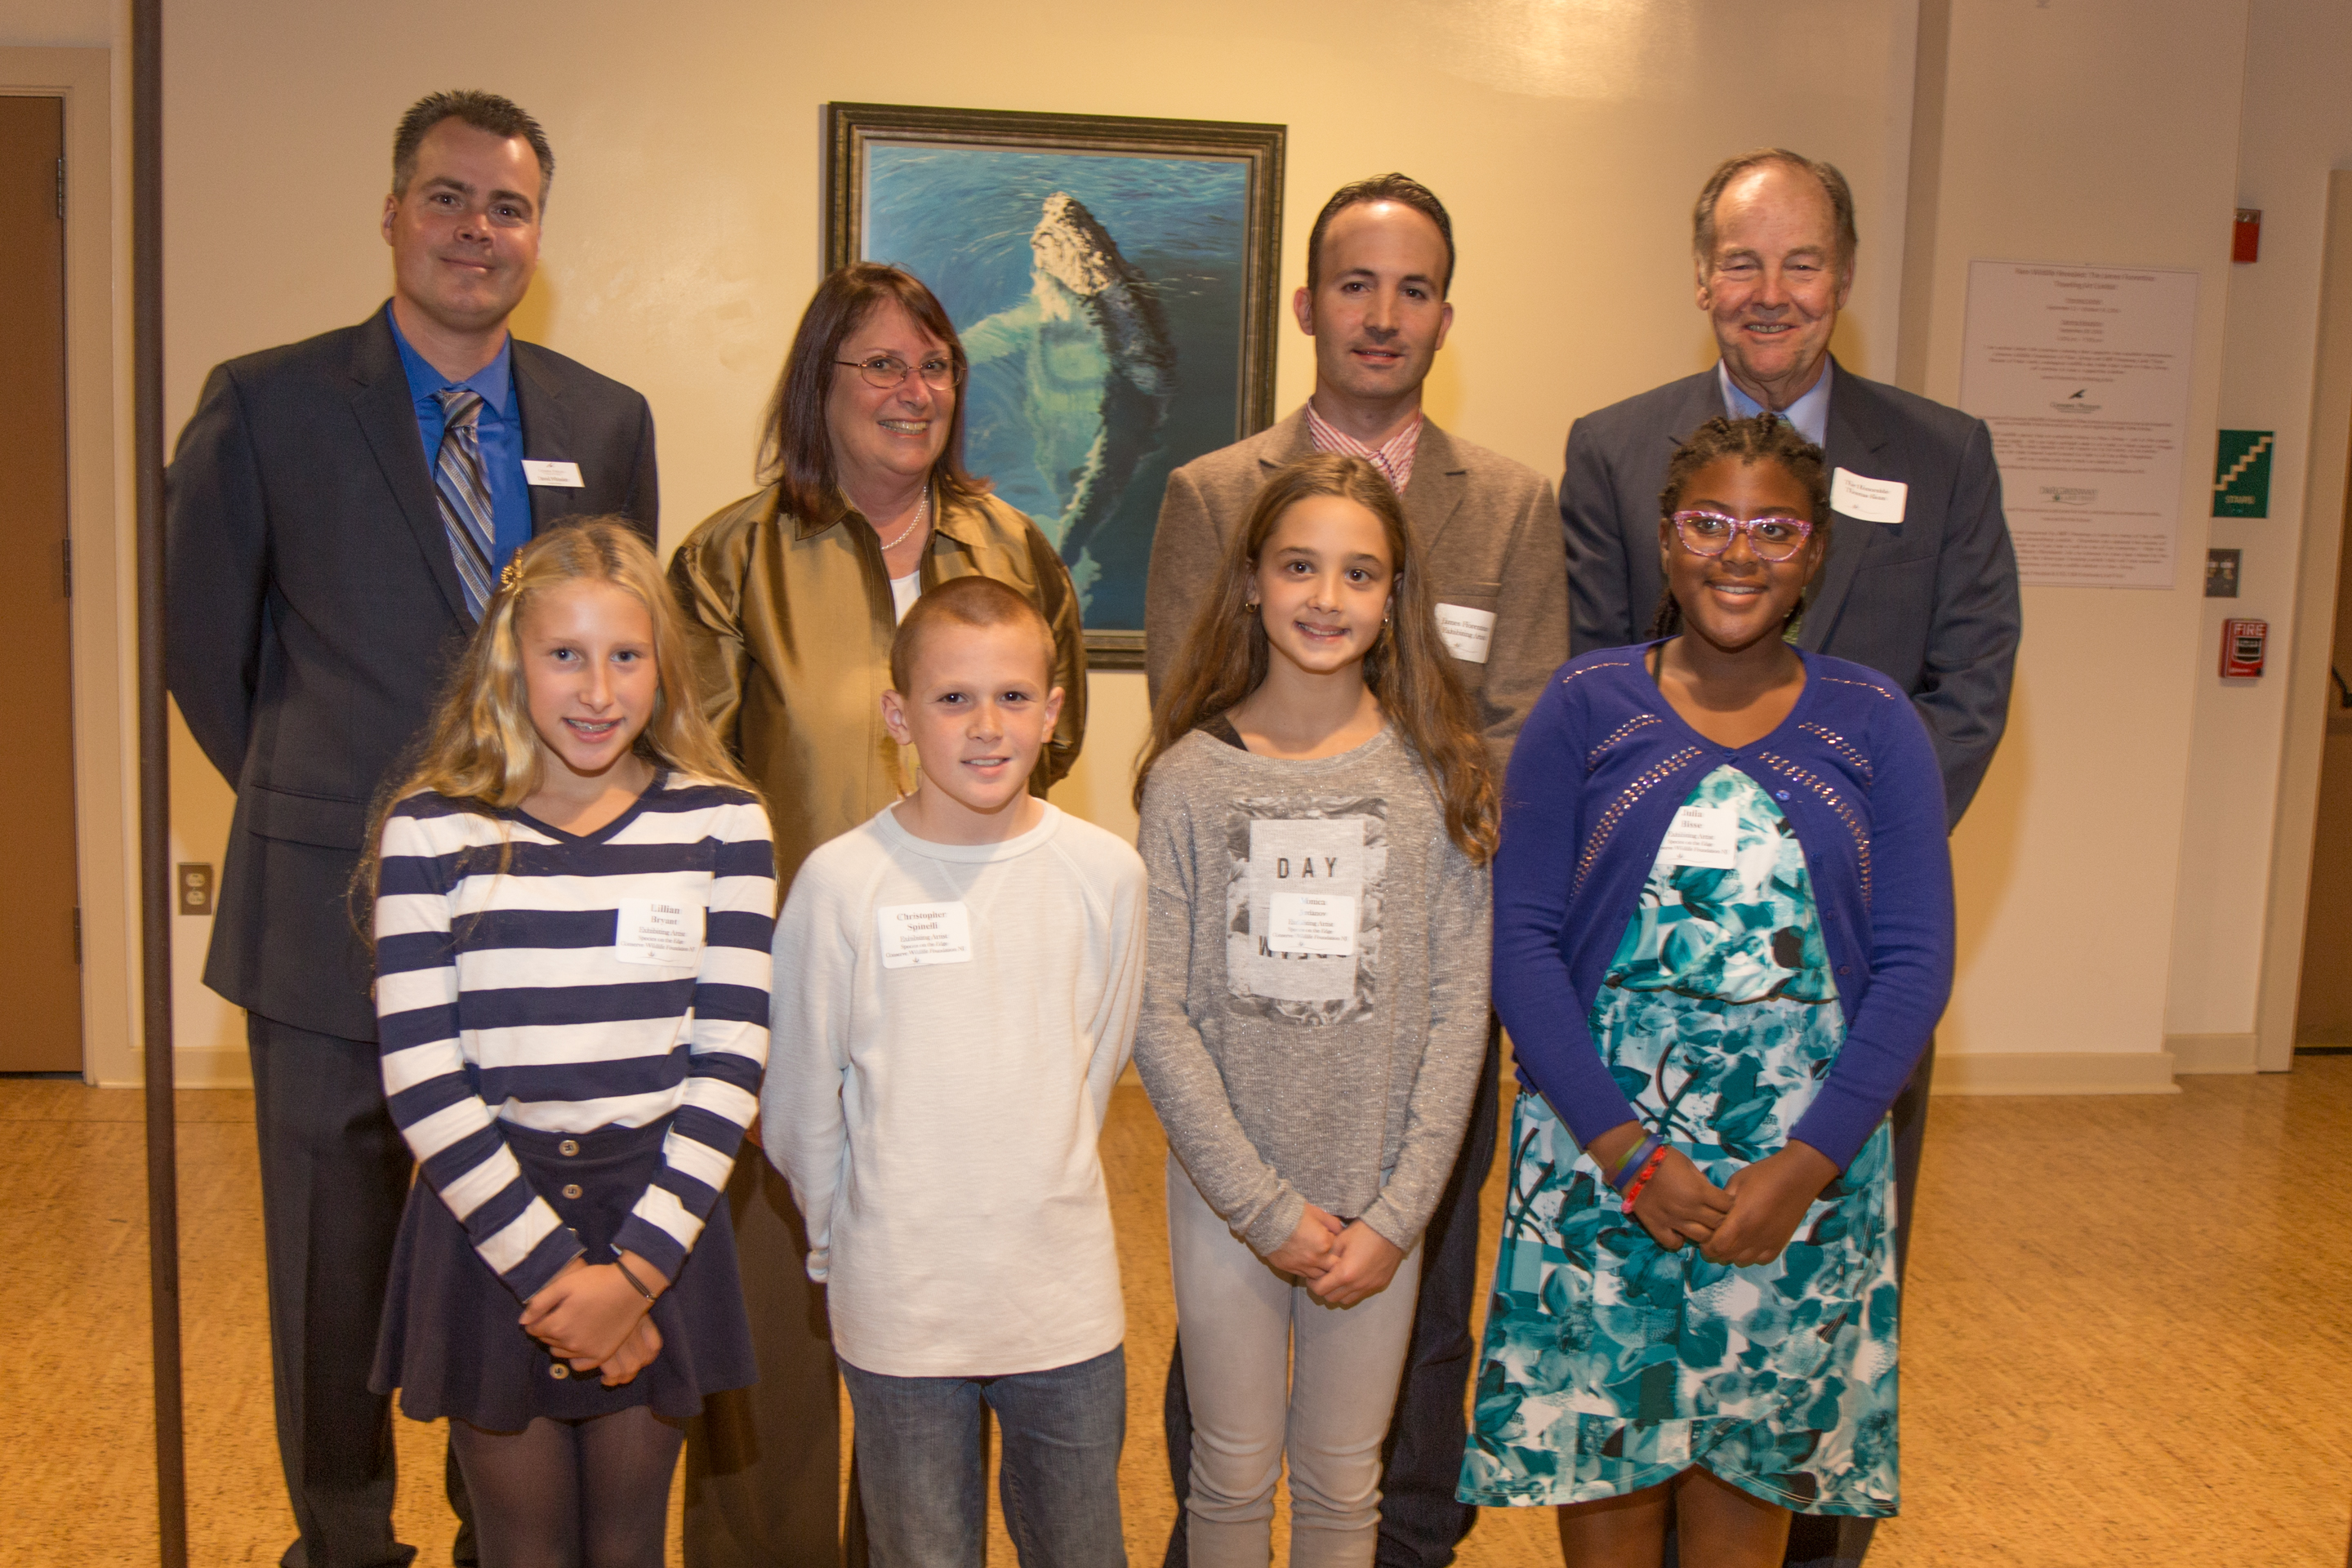 species on the edge art essay contest conserve wildlife tom kean and four of our species on the edge art essay contest winners attended our opening reception for the premiere exhibition of rare wildlife